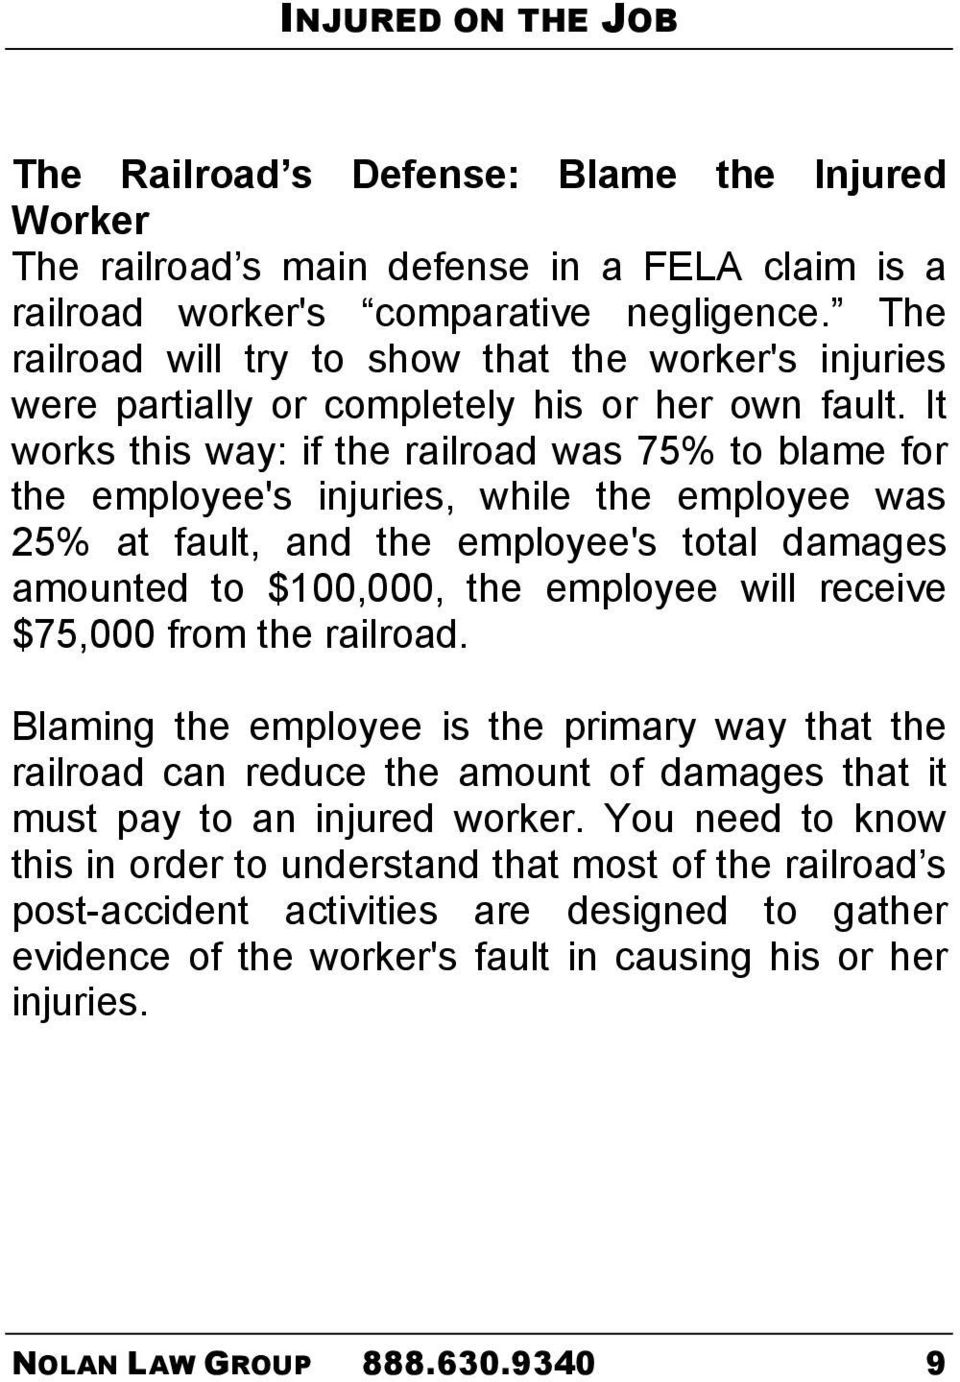 It works this way: if the railroad was 75% to blame for the employee's injuries, while the employee was 25% at fault, and the employee's total damages amounted to $100,000, the employee will receive